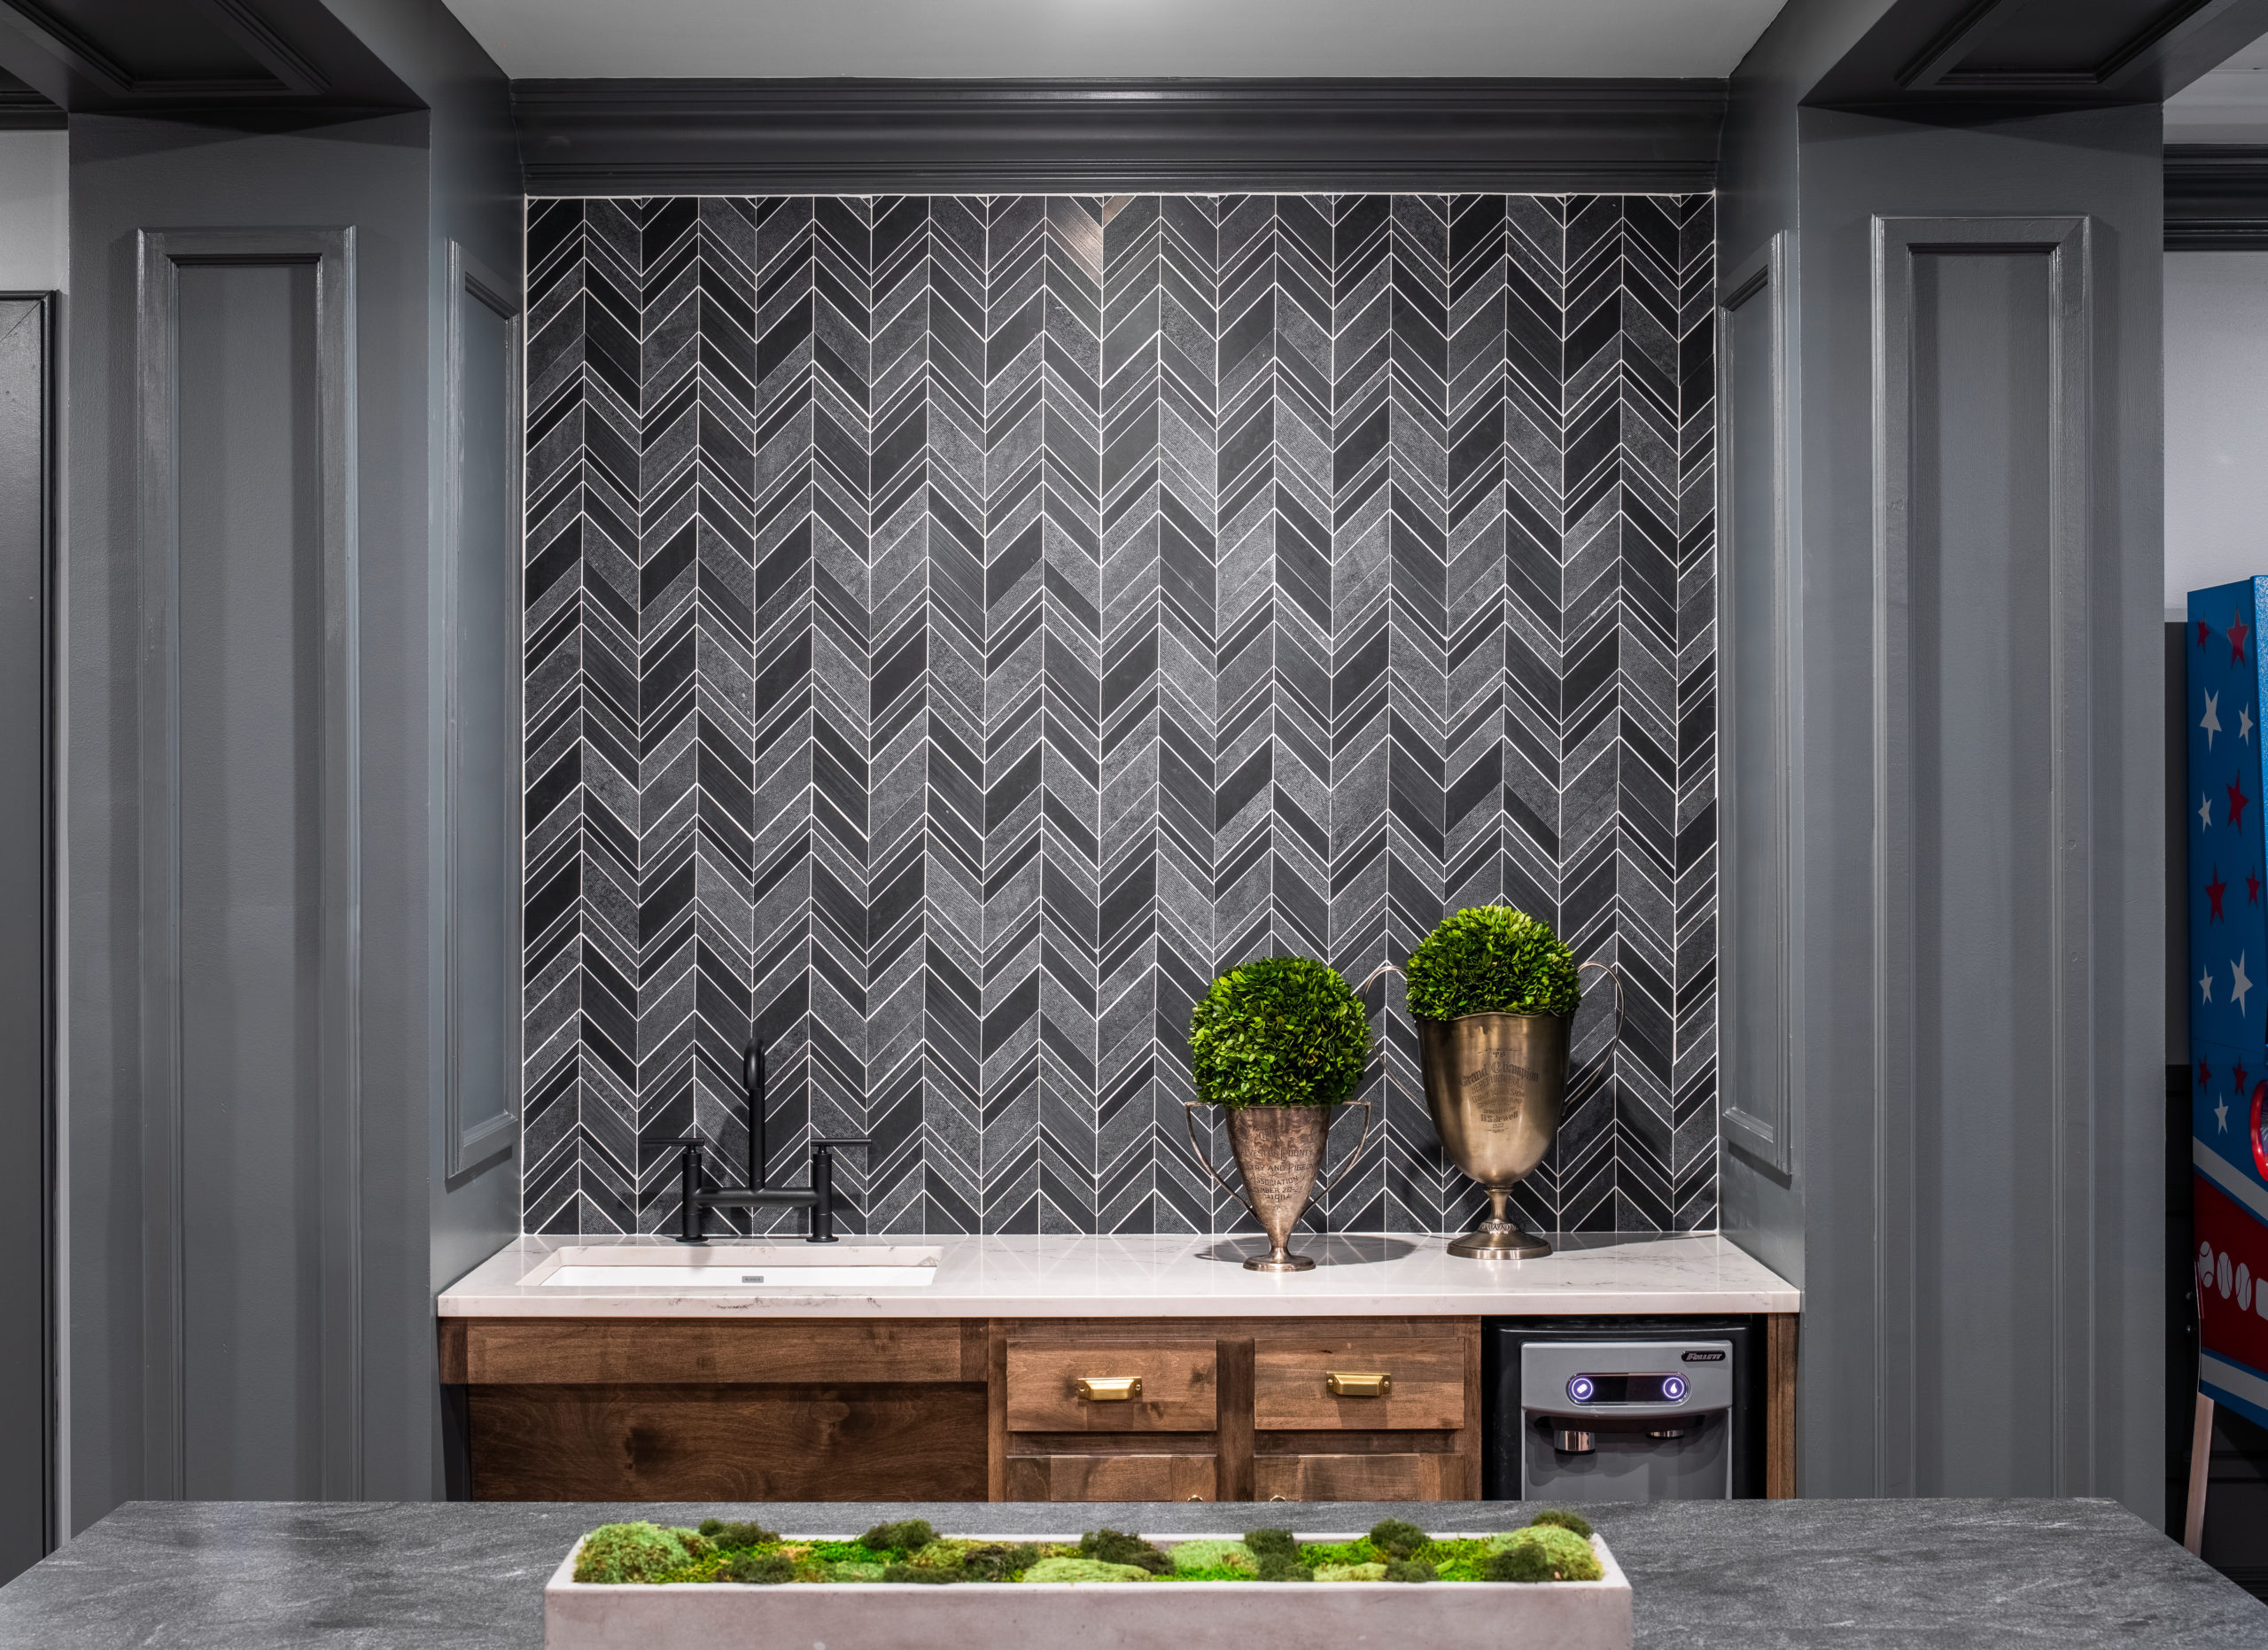 Longleaf lounge top of bar with gray chevron backsplash and gray walls, brown cabinets with white countertop and sink greenery in pots and vases